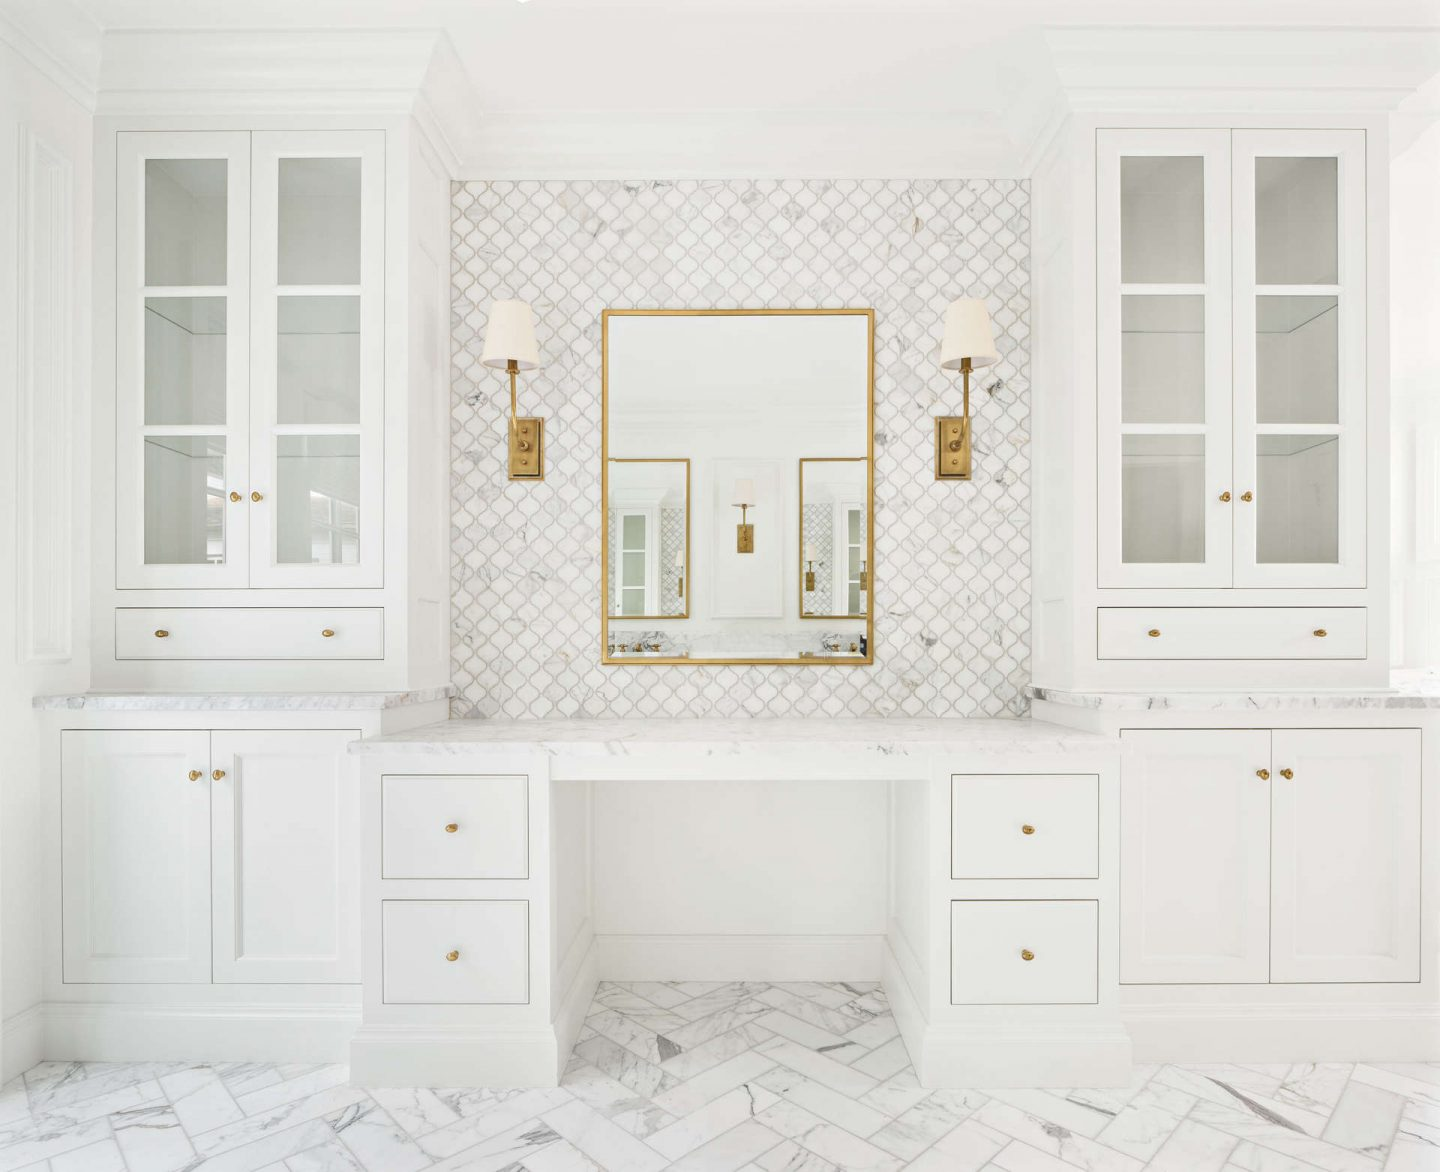 White calacatta marble luxurious bathroom design by The Fox Group with makeup area. Come explore these timeless design ideas...hello lovely indeed. #thefoxgroup #luxuriousbathroom #calacattamarble #whitebathrooms #bathroomdesign